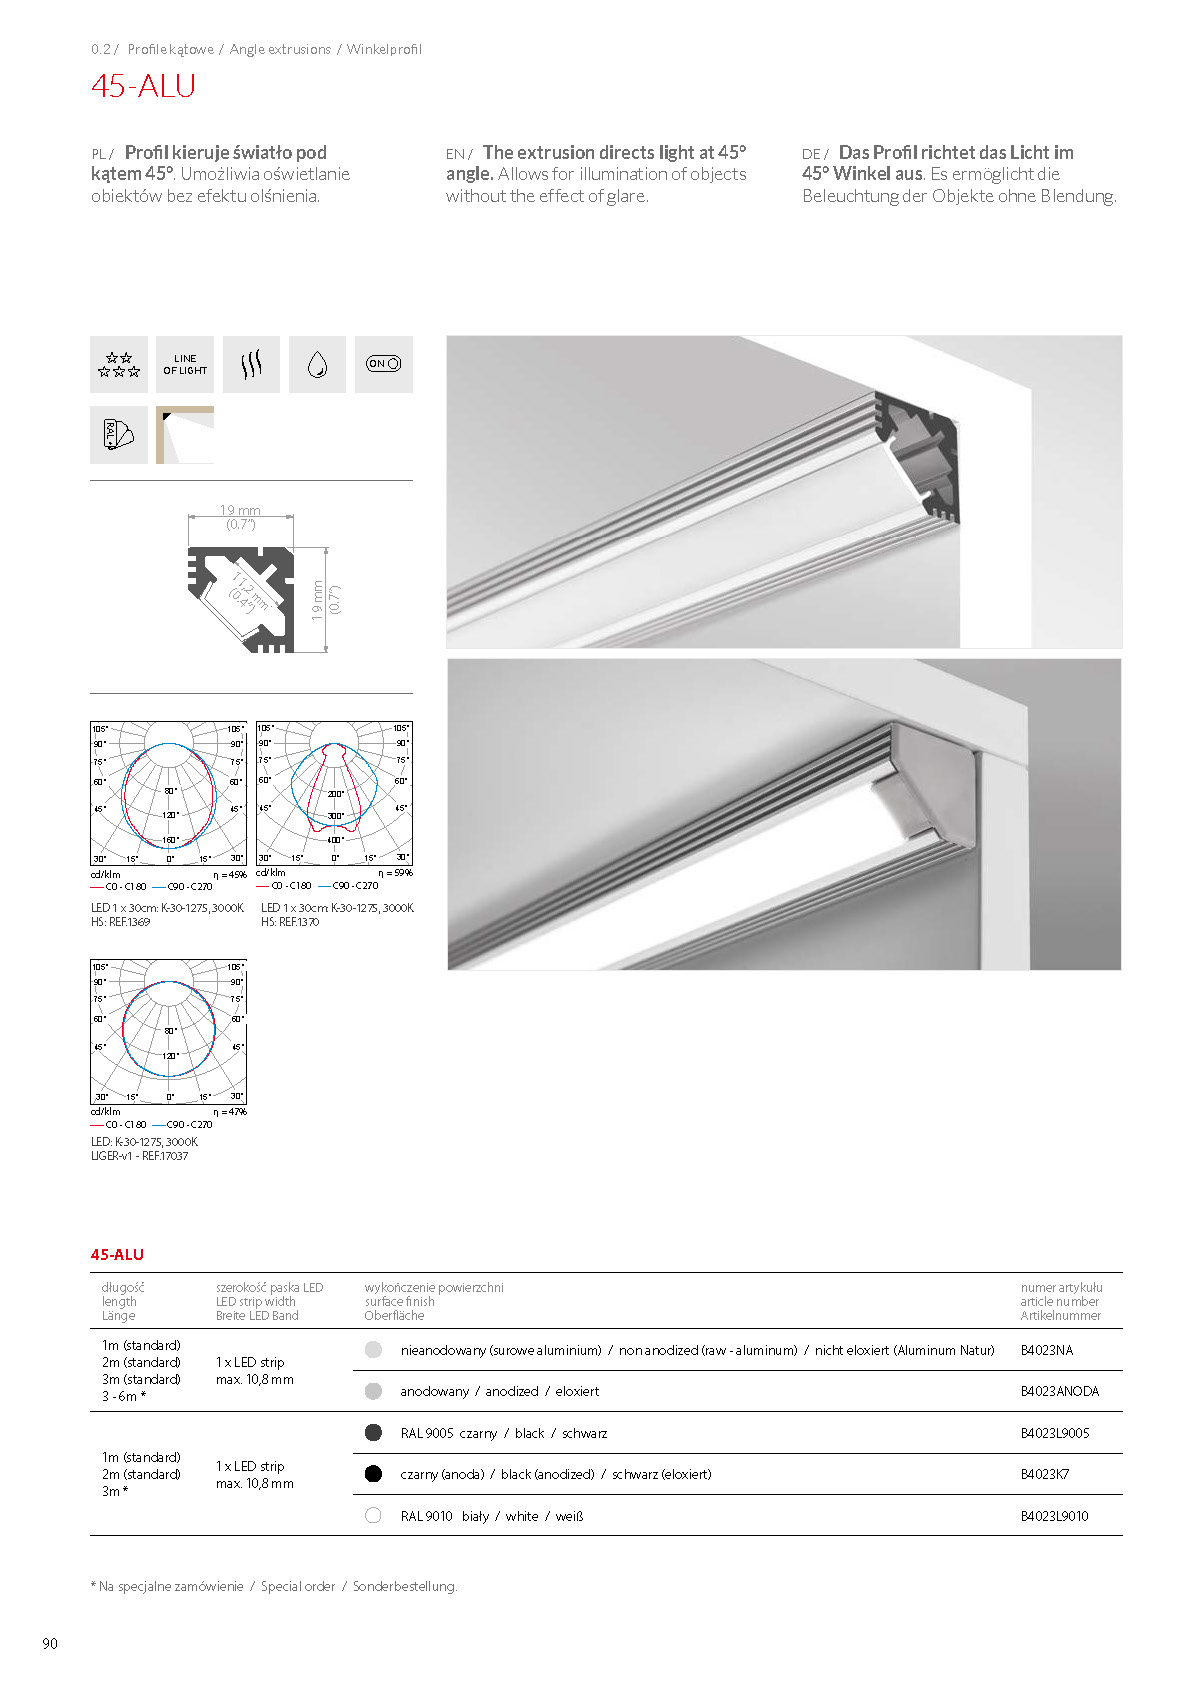 45-ALU, profile | stair-lighting.com, B4023 profile, 45-ALU klus profile, 45-ALU channel,